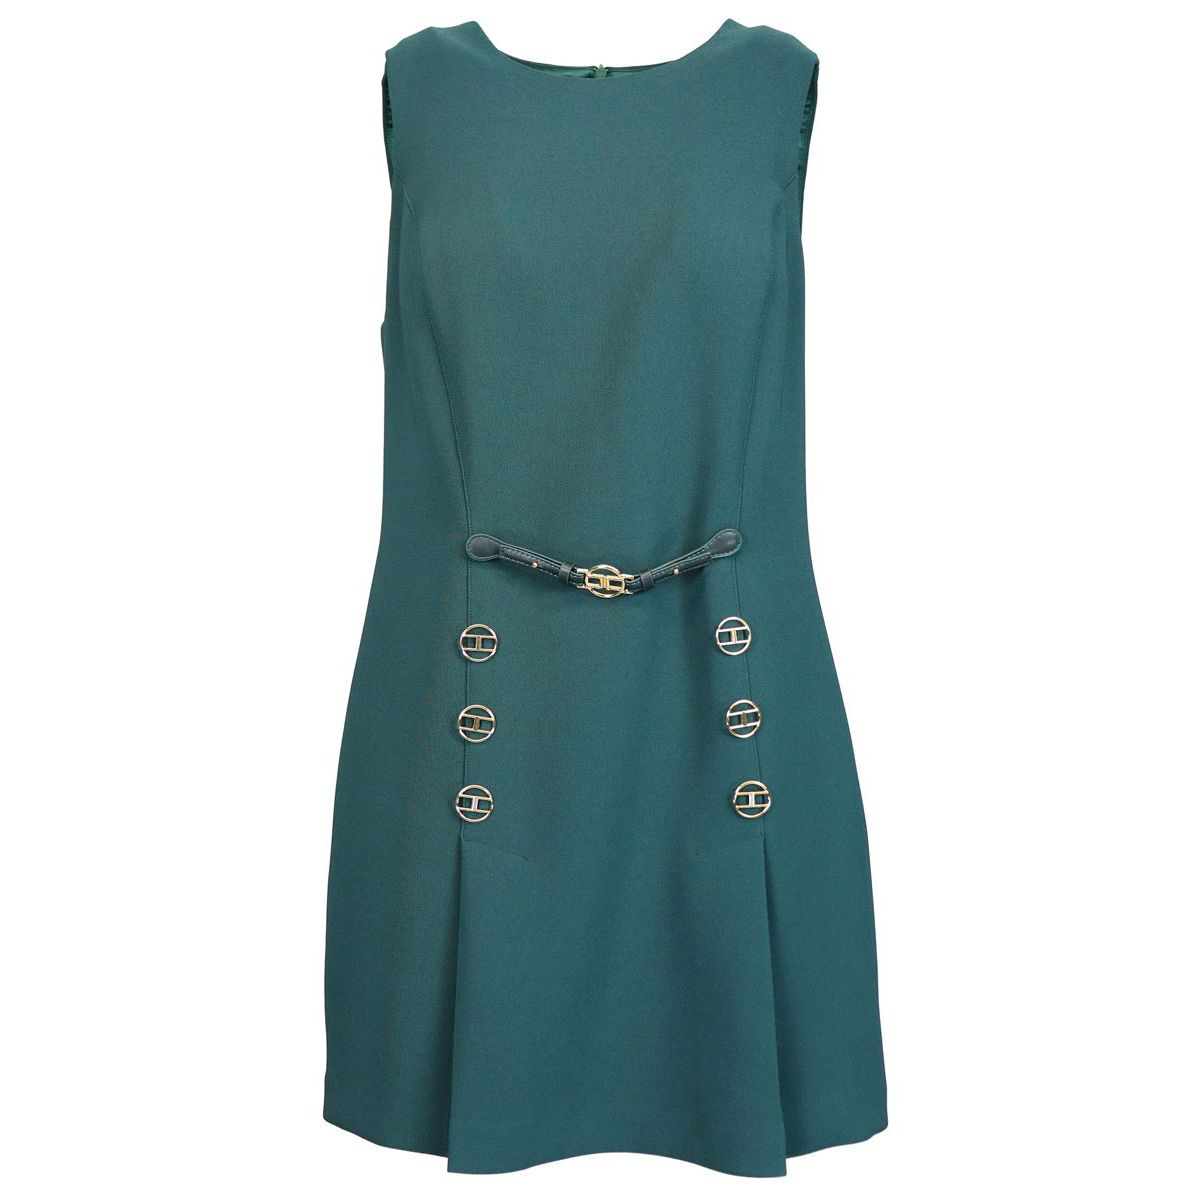 dress with applications Green bottle Elisabetta Franchi